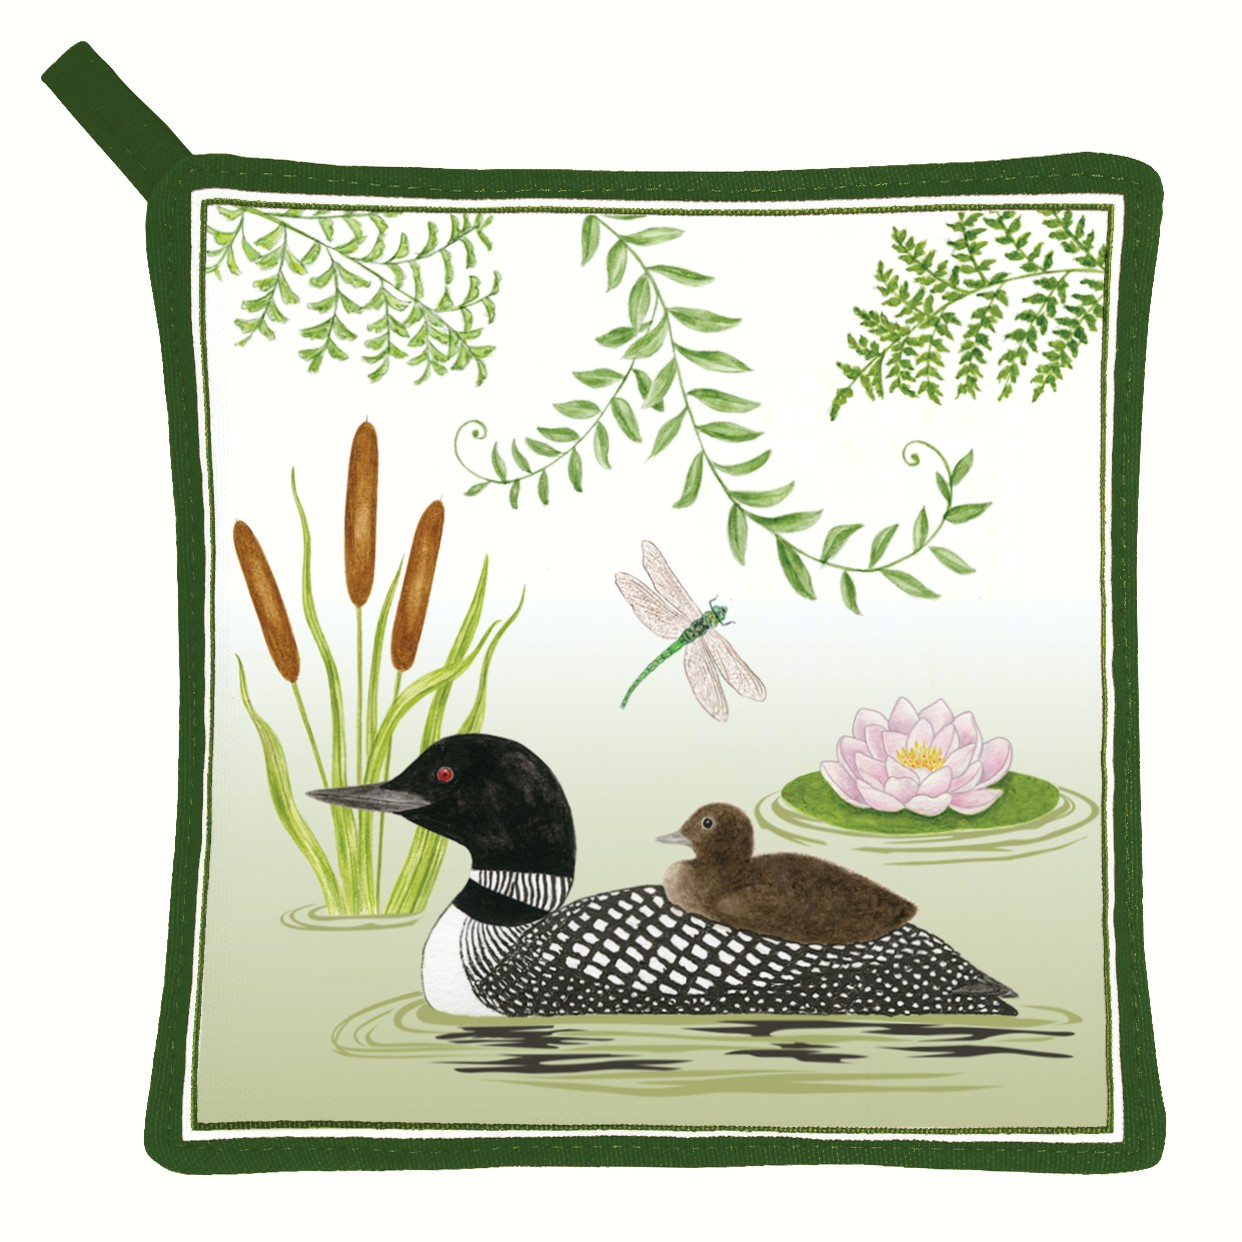 Loon Pot Holder